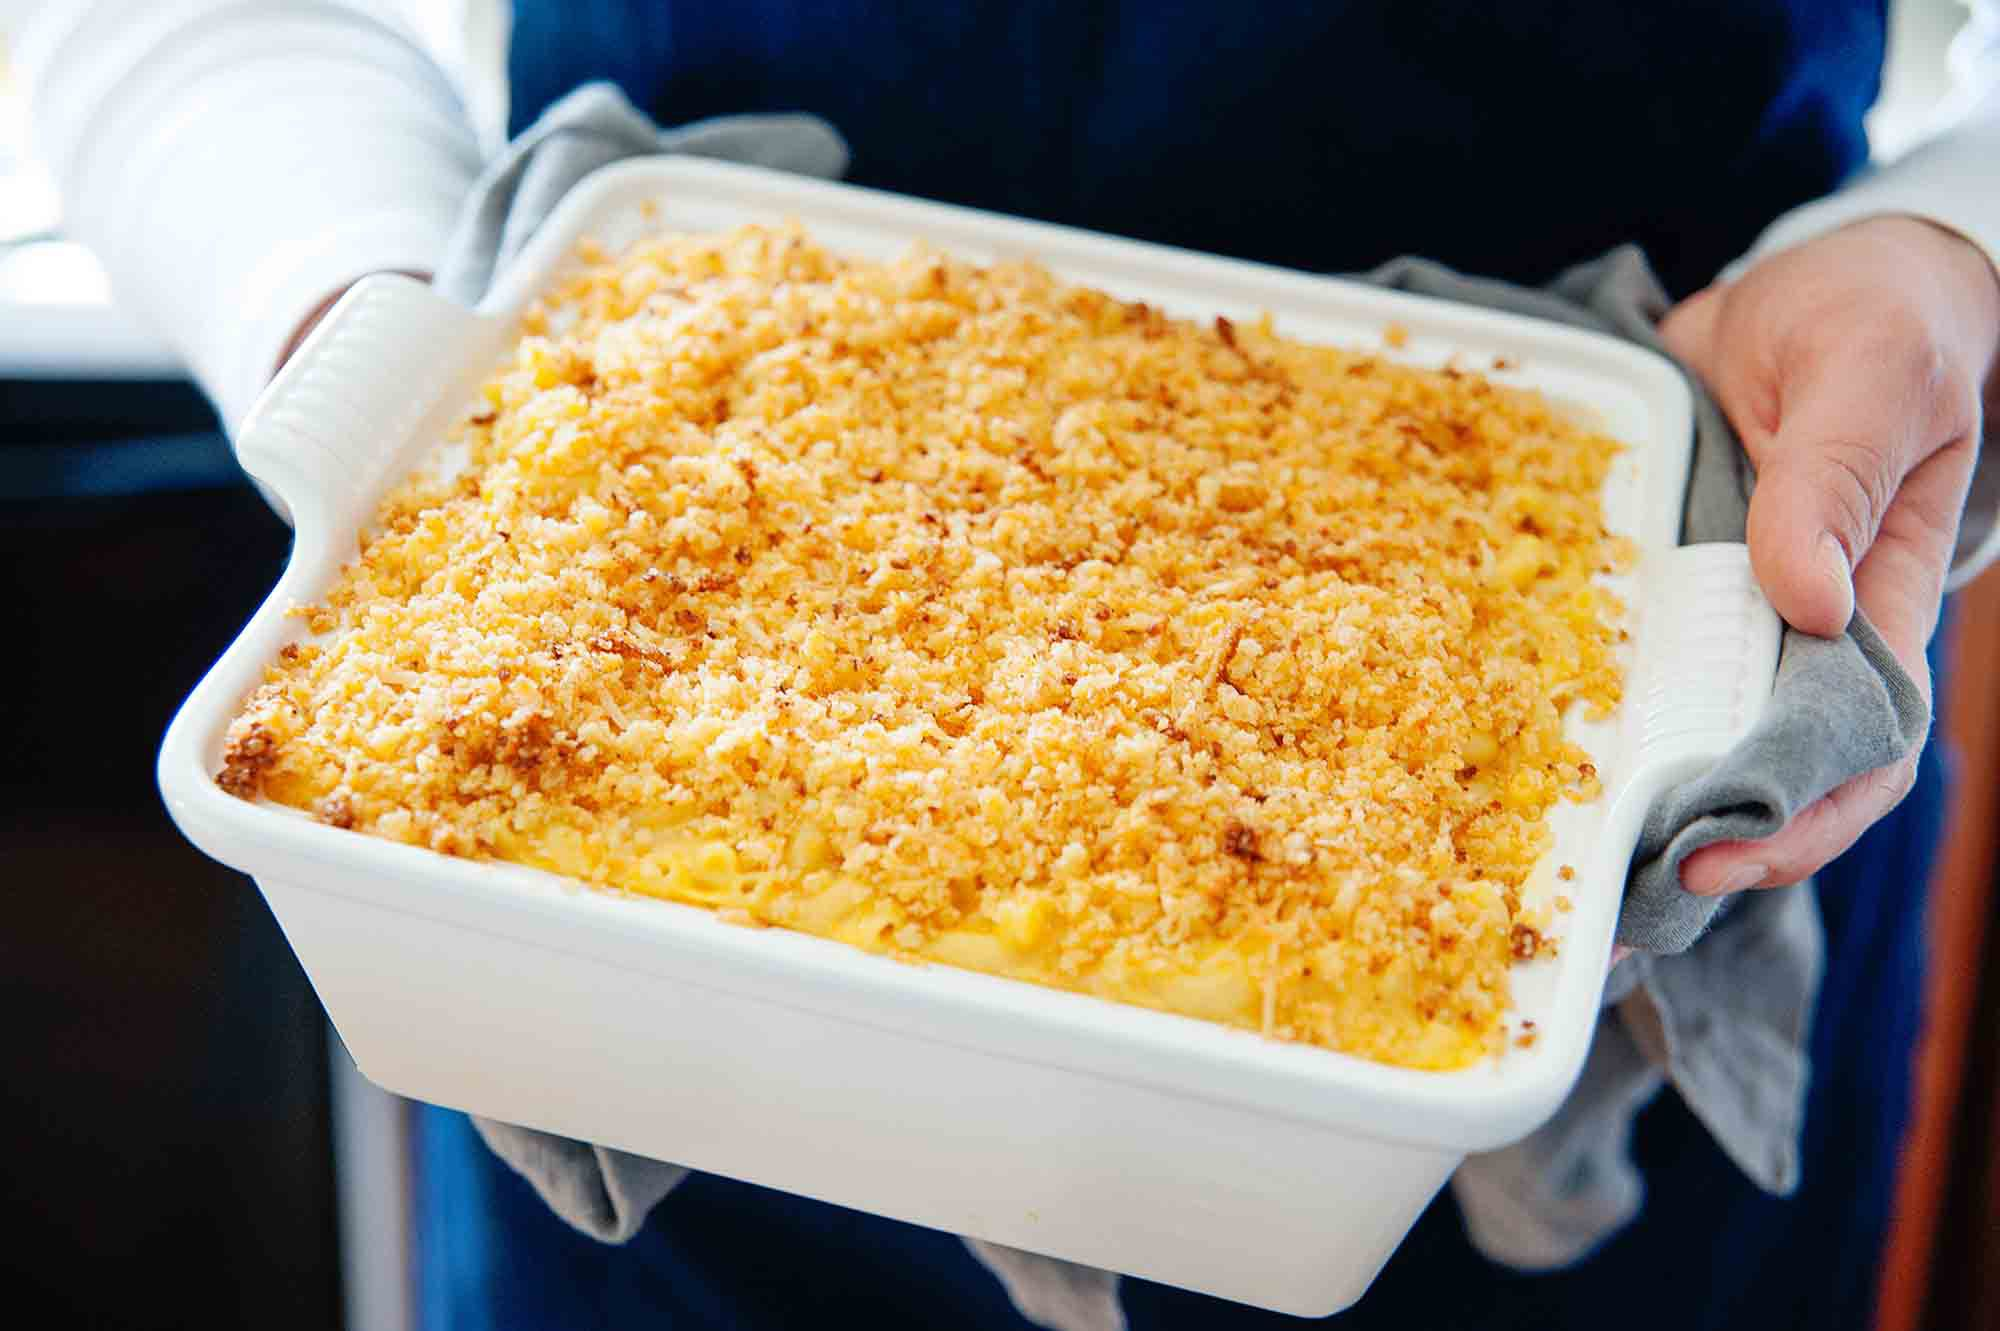 Kraft mac and cheese - woman's hands holding a white casserole dish filled with baked mac and cheese